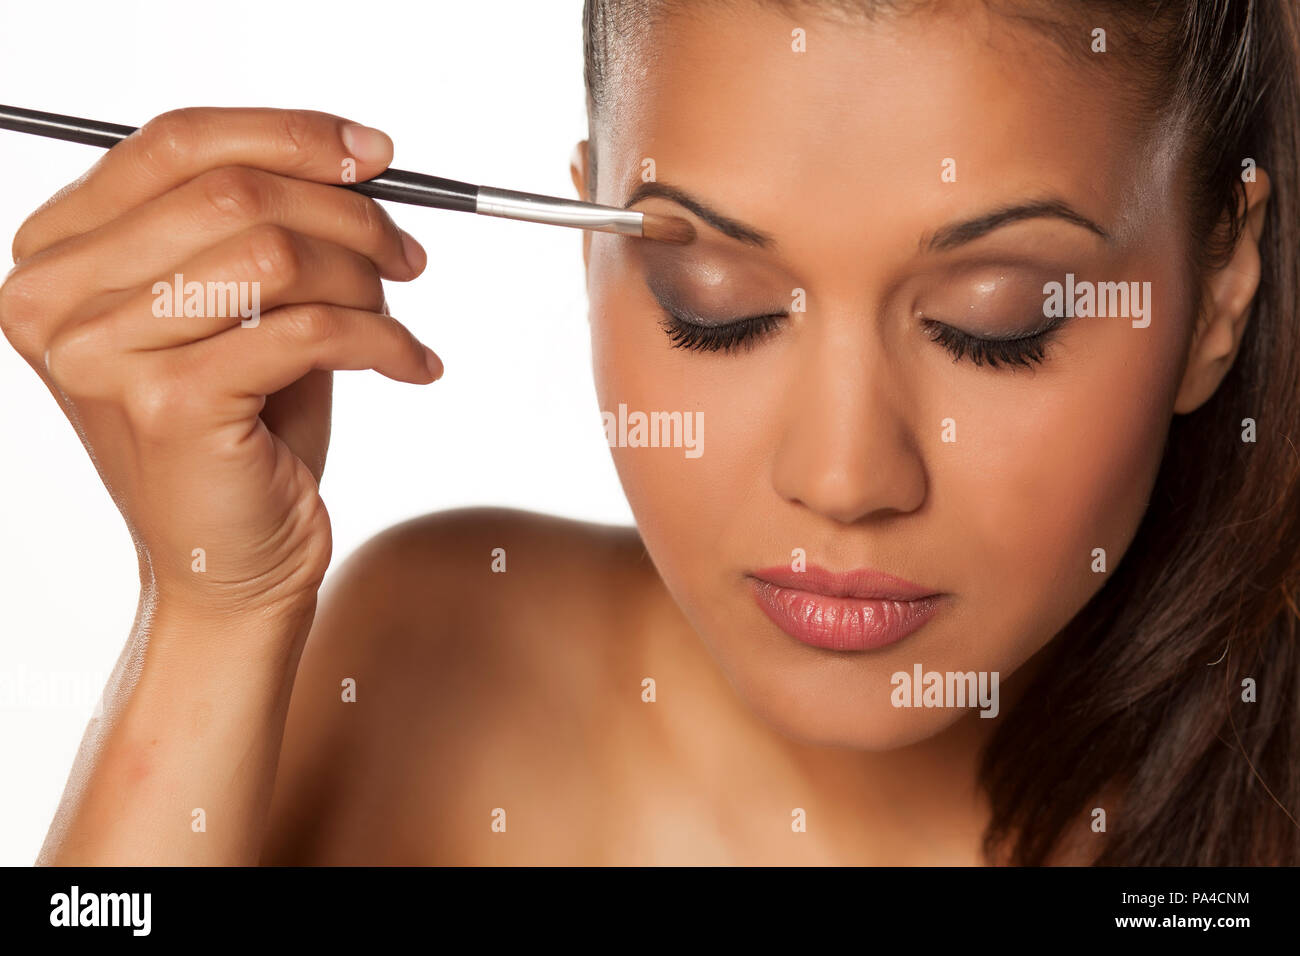 eye shadow applied with a brush - close up - Stock Image